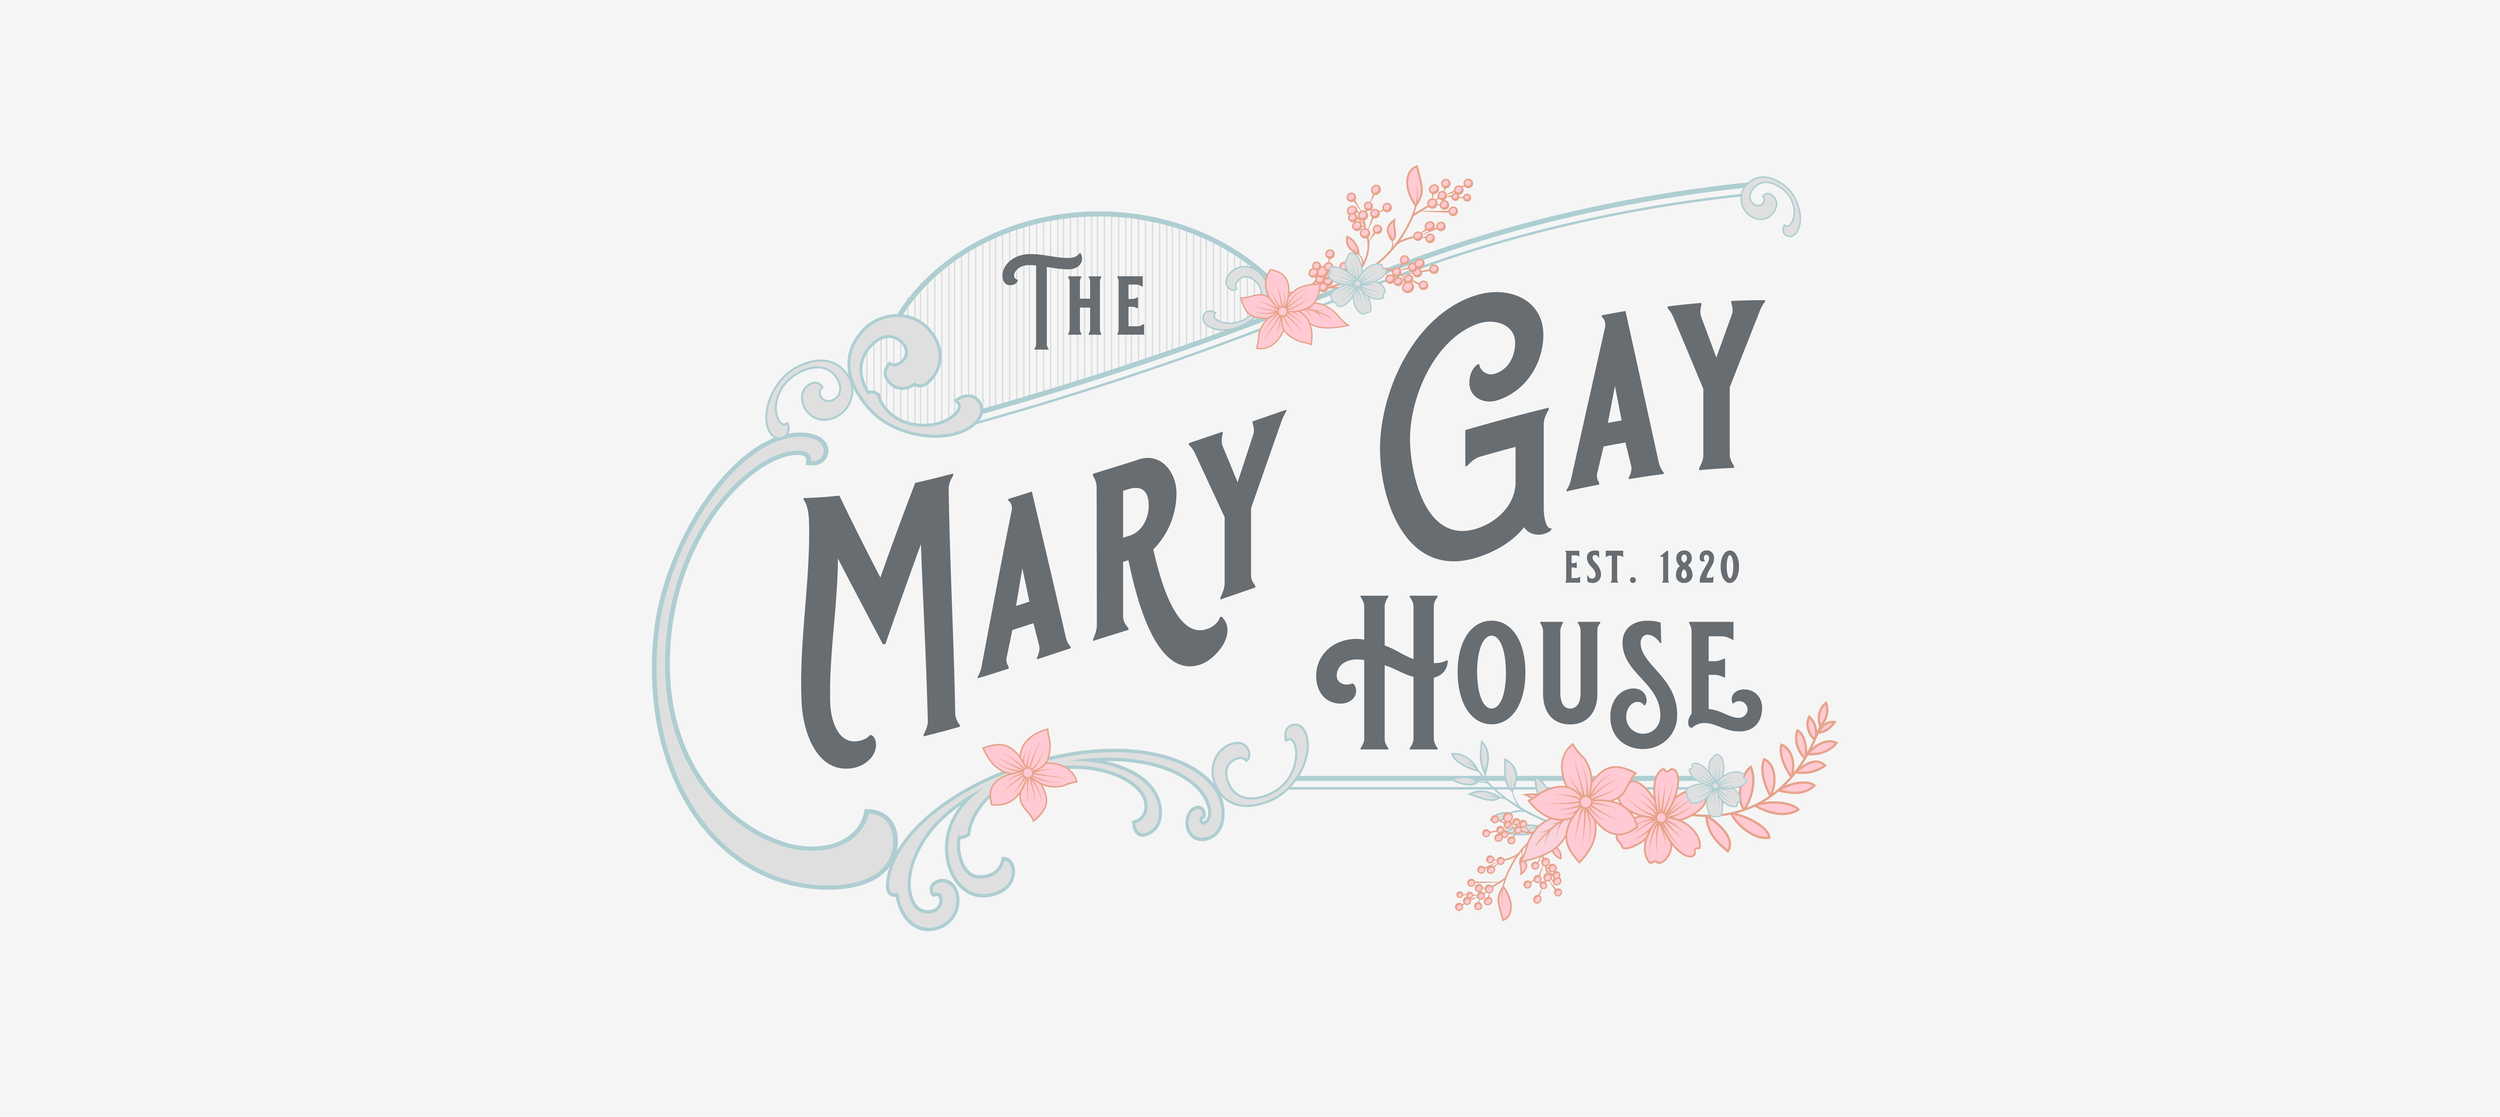 marygayhouse-scdigital1